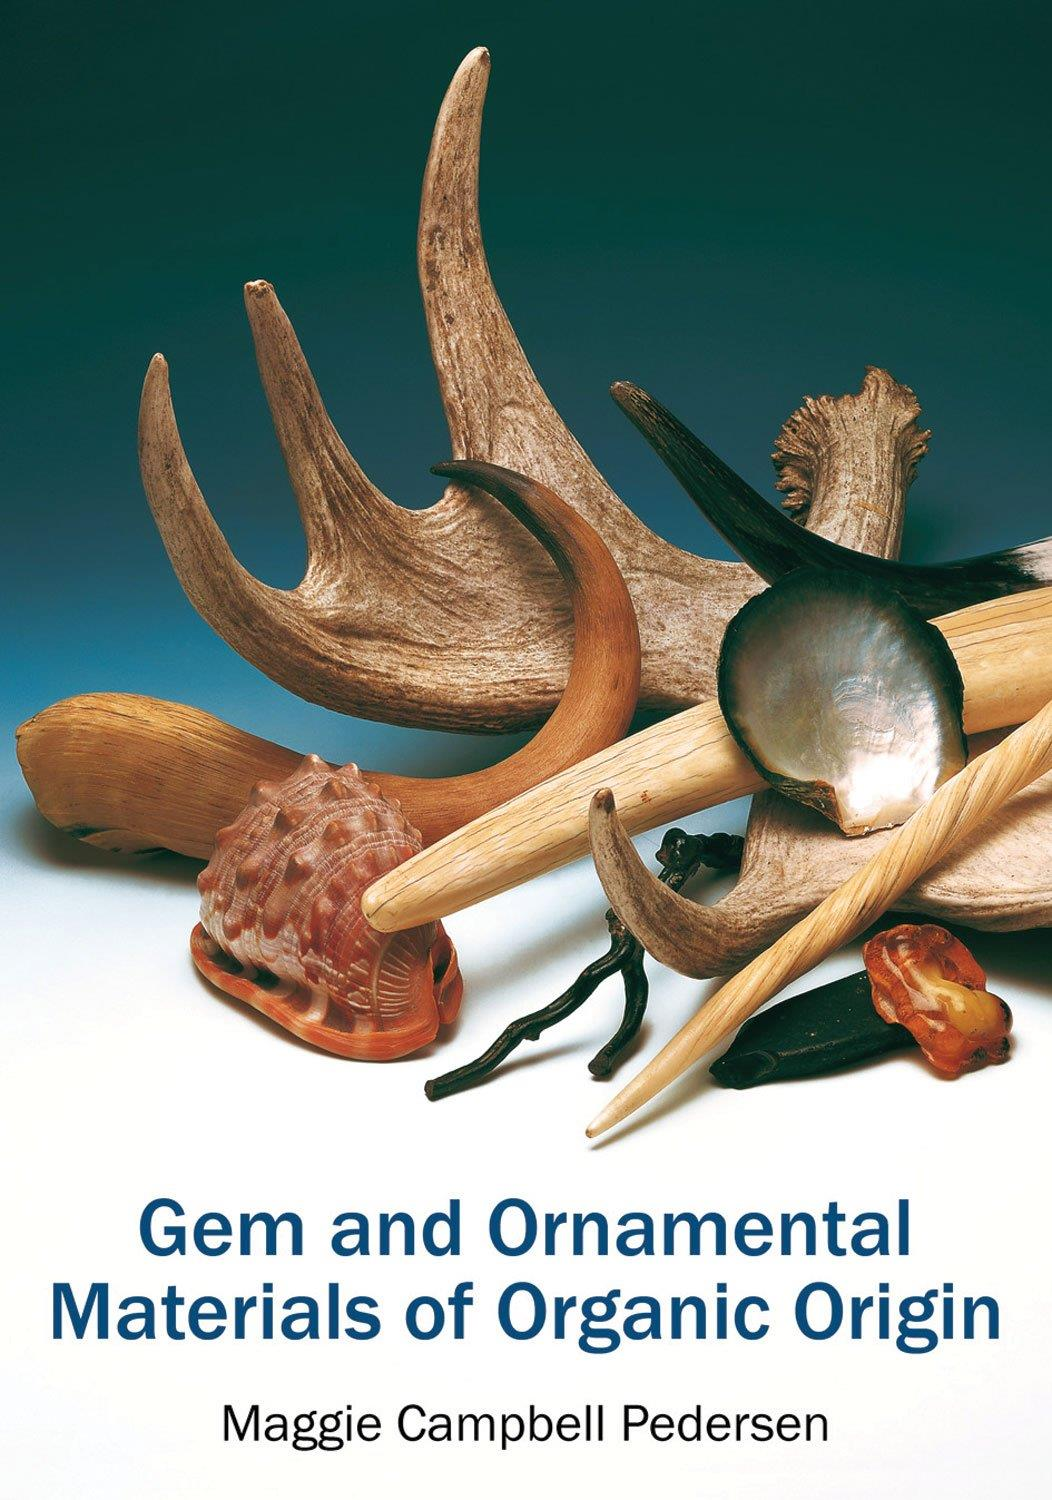 Gem and Ornamental Materials of Organic Origin - Maggie Campbell Pedersen